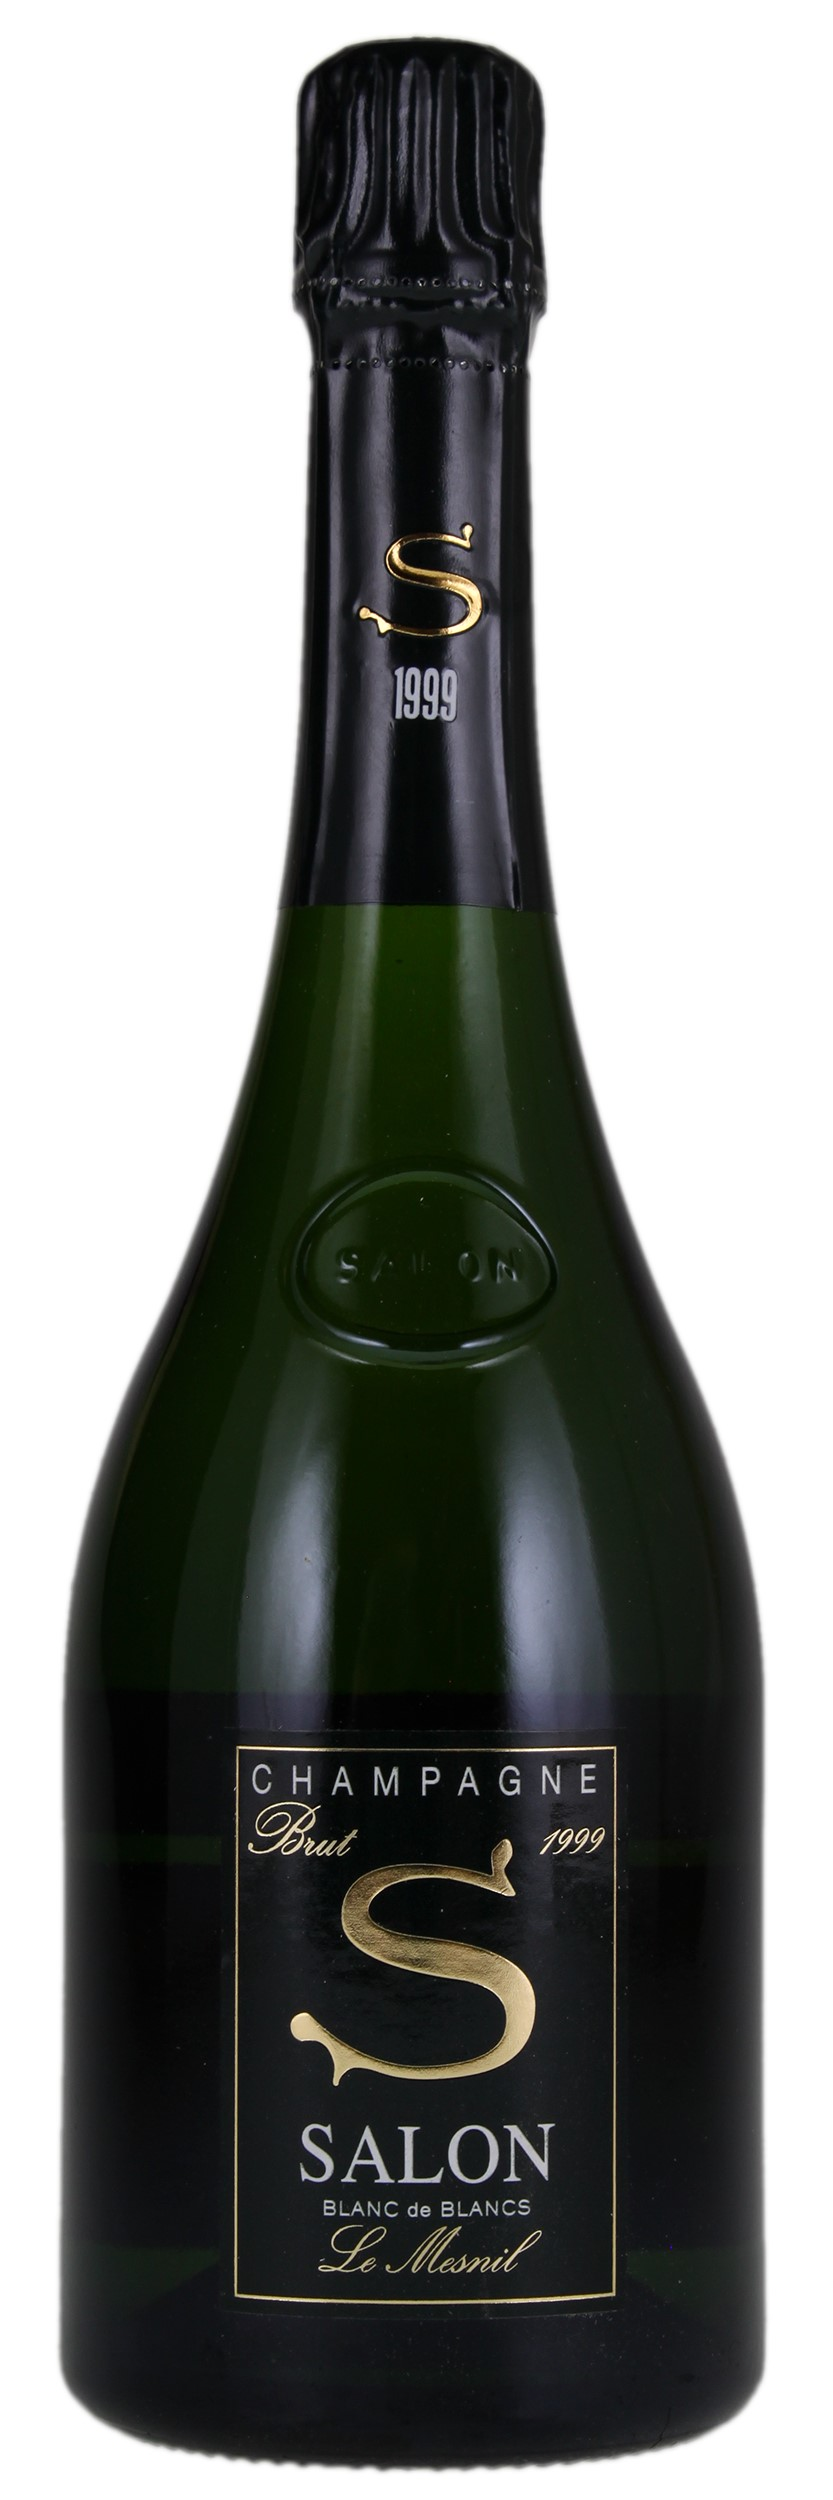 Salon Le Mesnil Blanc de Blancs 1999, Sparkling from France - WineBid